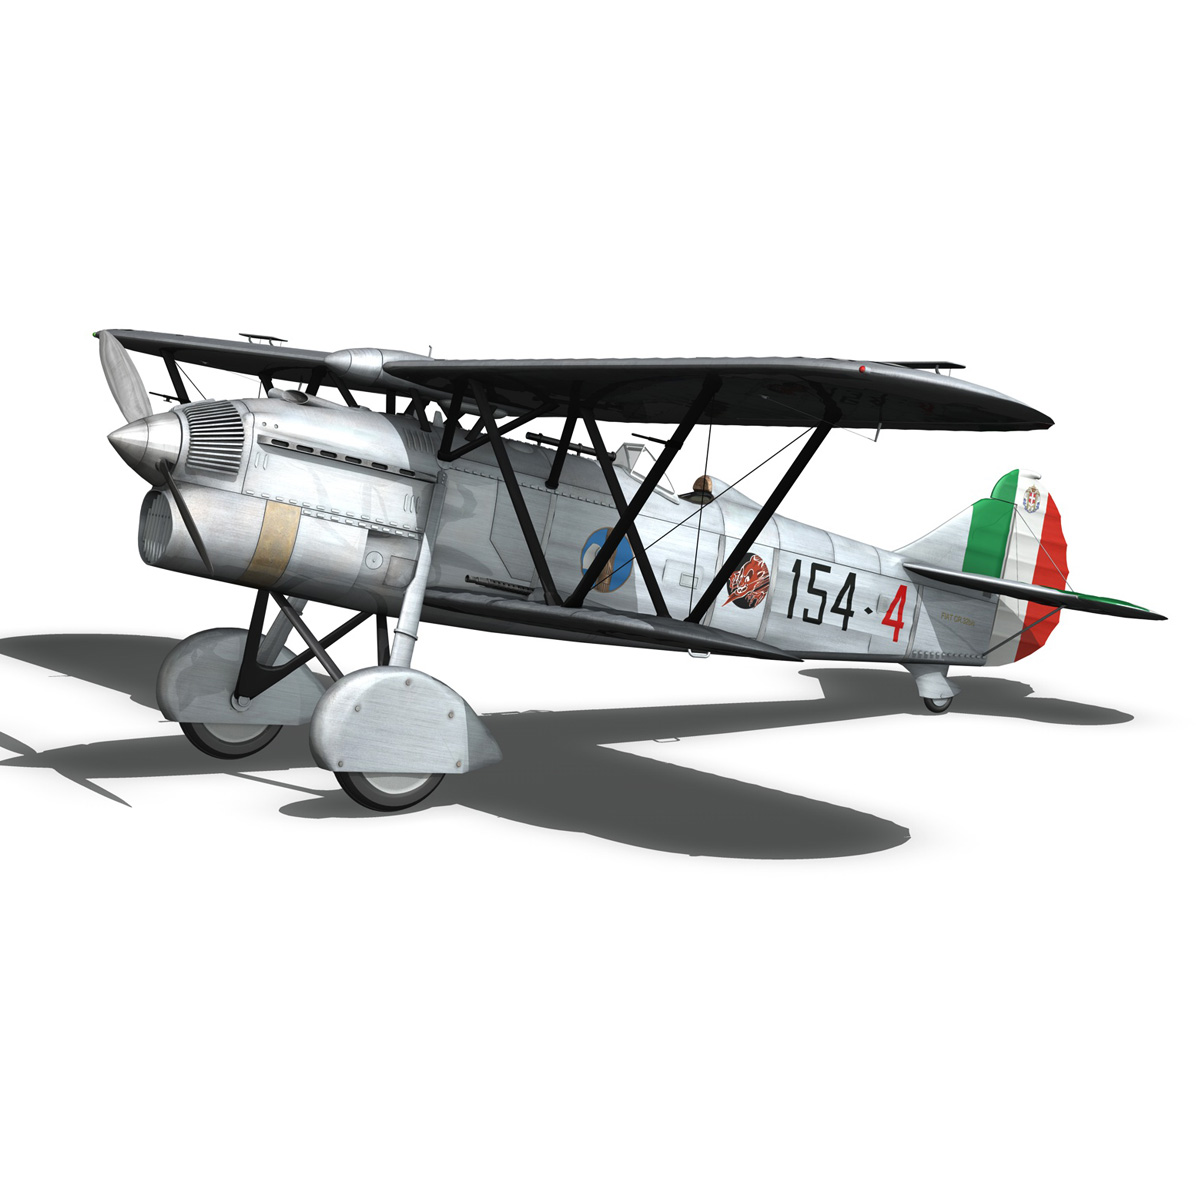 fiat cr.32 – italy airforce – 154 squadriglia 3d model fbx c4d lwo obj 268138